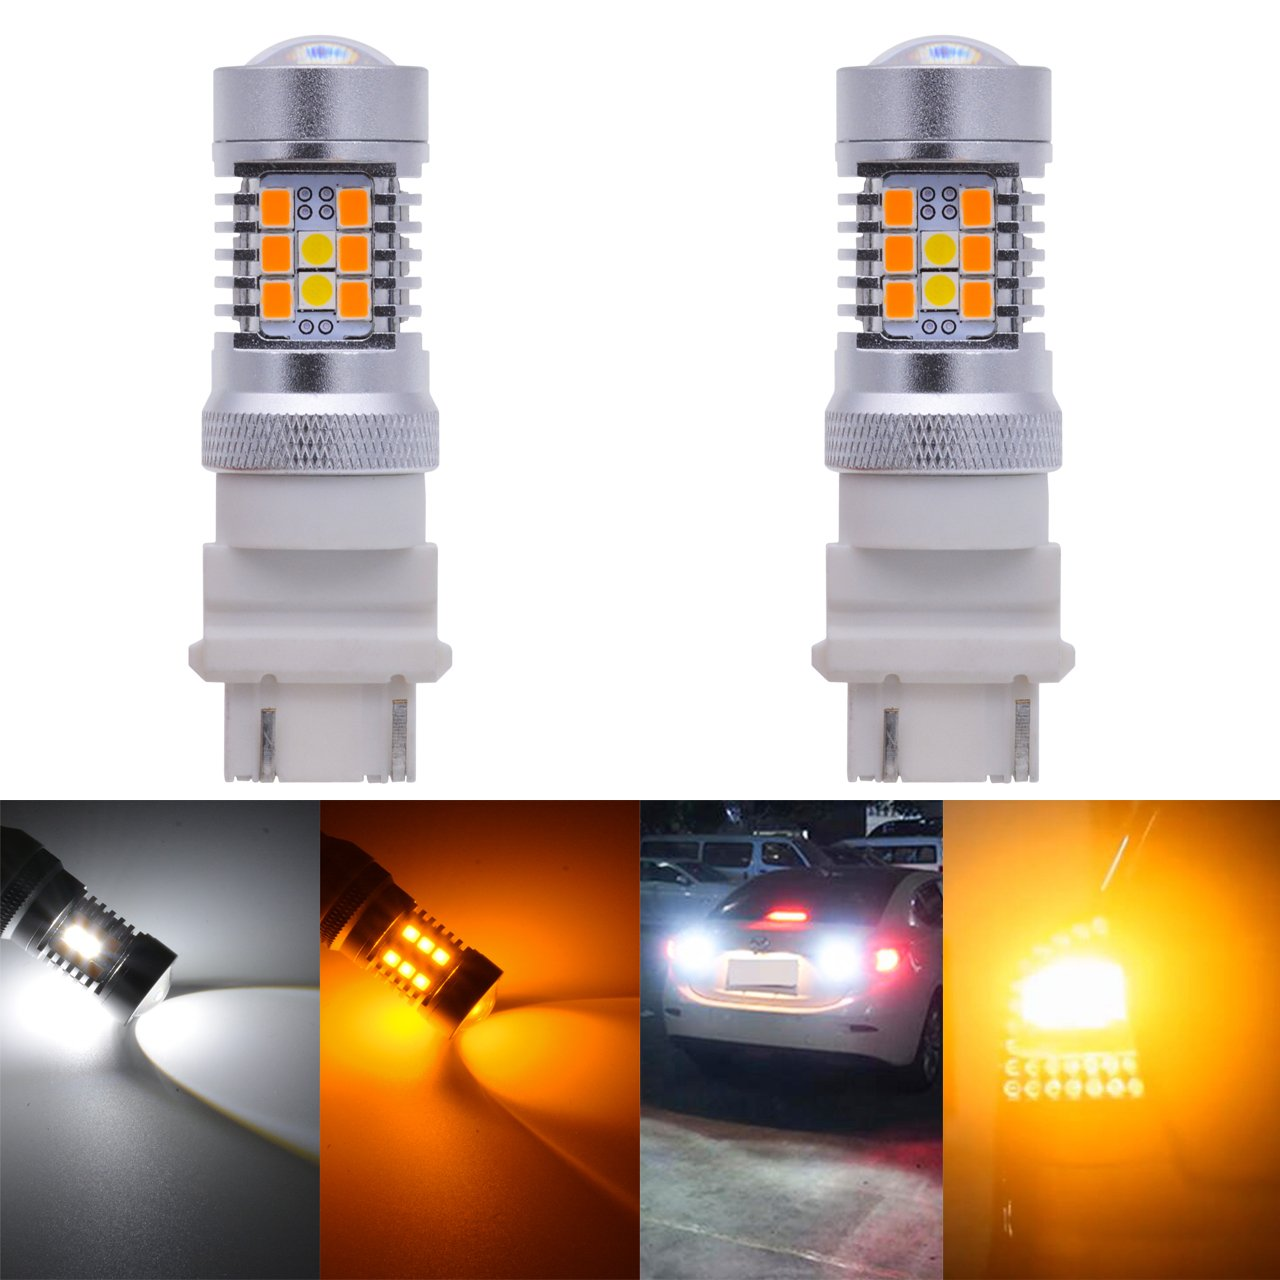 KaTur 3157 3155 3457 3057 4057 Extremely Bright Amber/White Dual Color Switchback Turn Signal LED Light Bulbs 2835 21SMD Lens Brake LED Light 10.5W DC 12V 6500K (Pack of 2) 2AM-CL-1210-3157-W/A